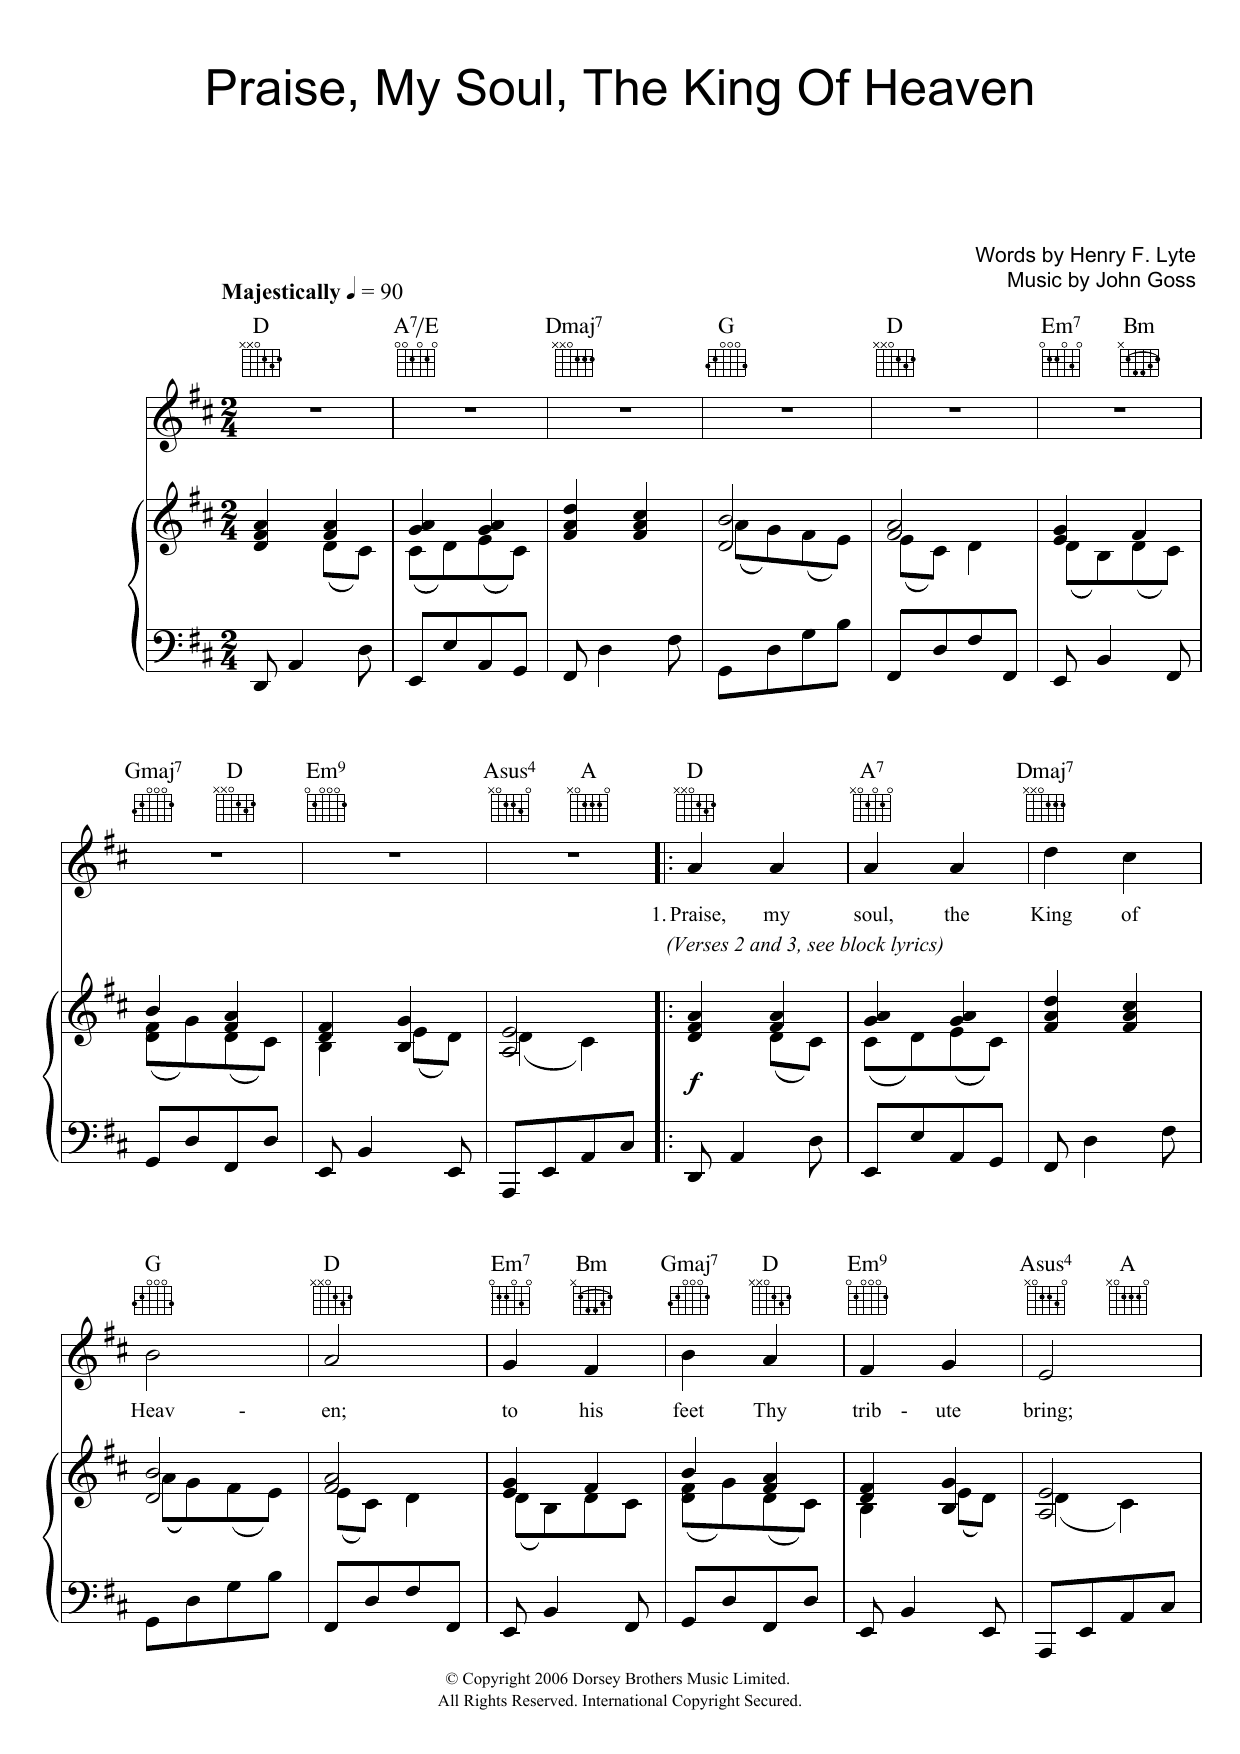 Traditional: Praise, My Soul, The King Of Heaven